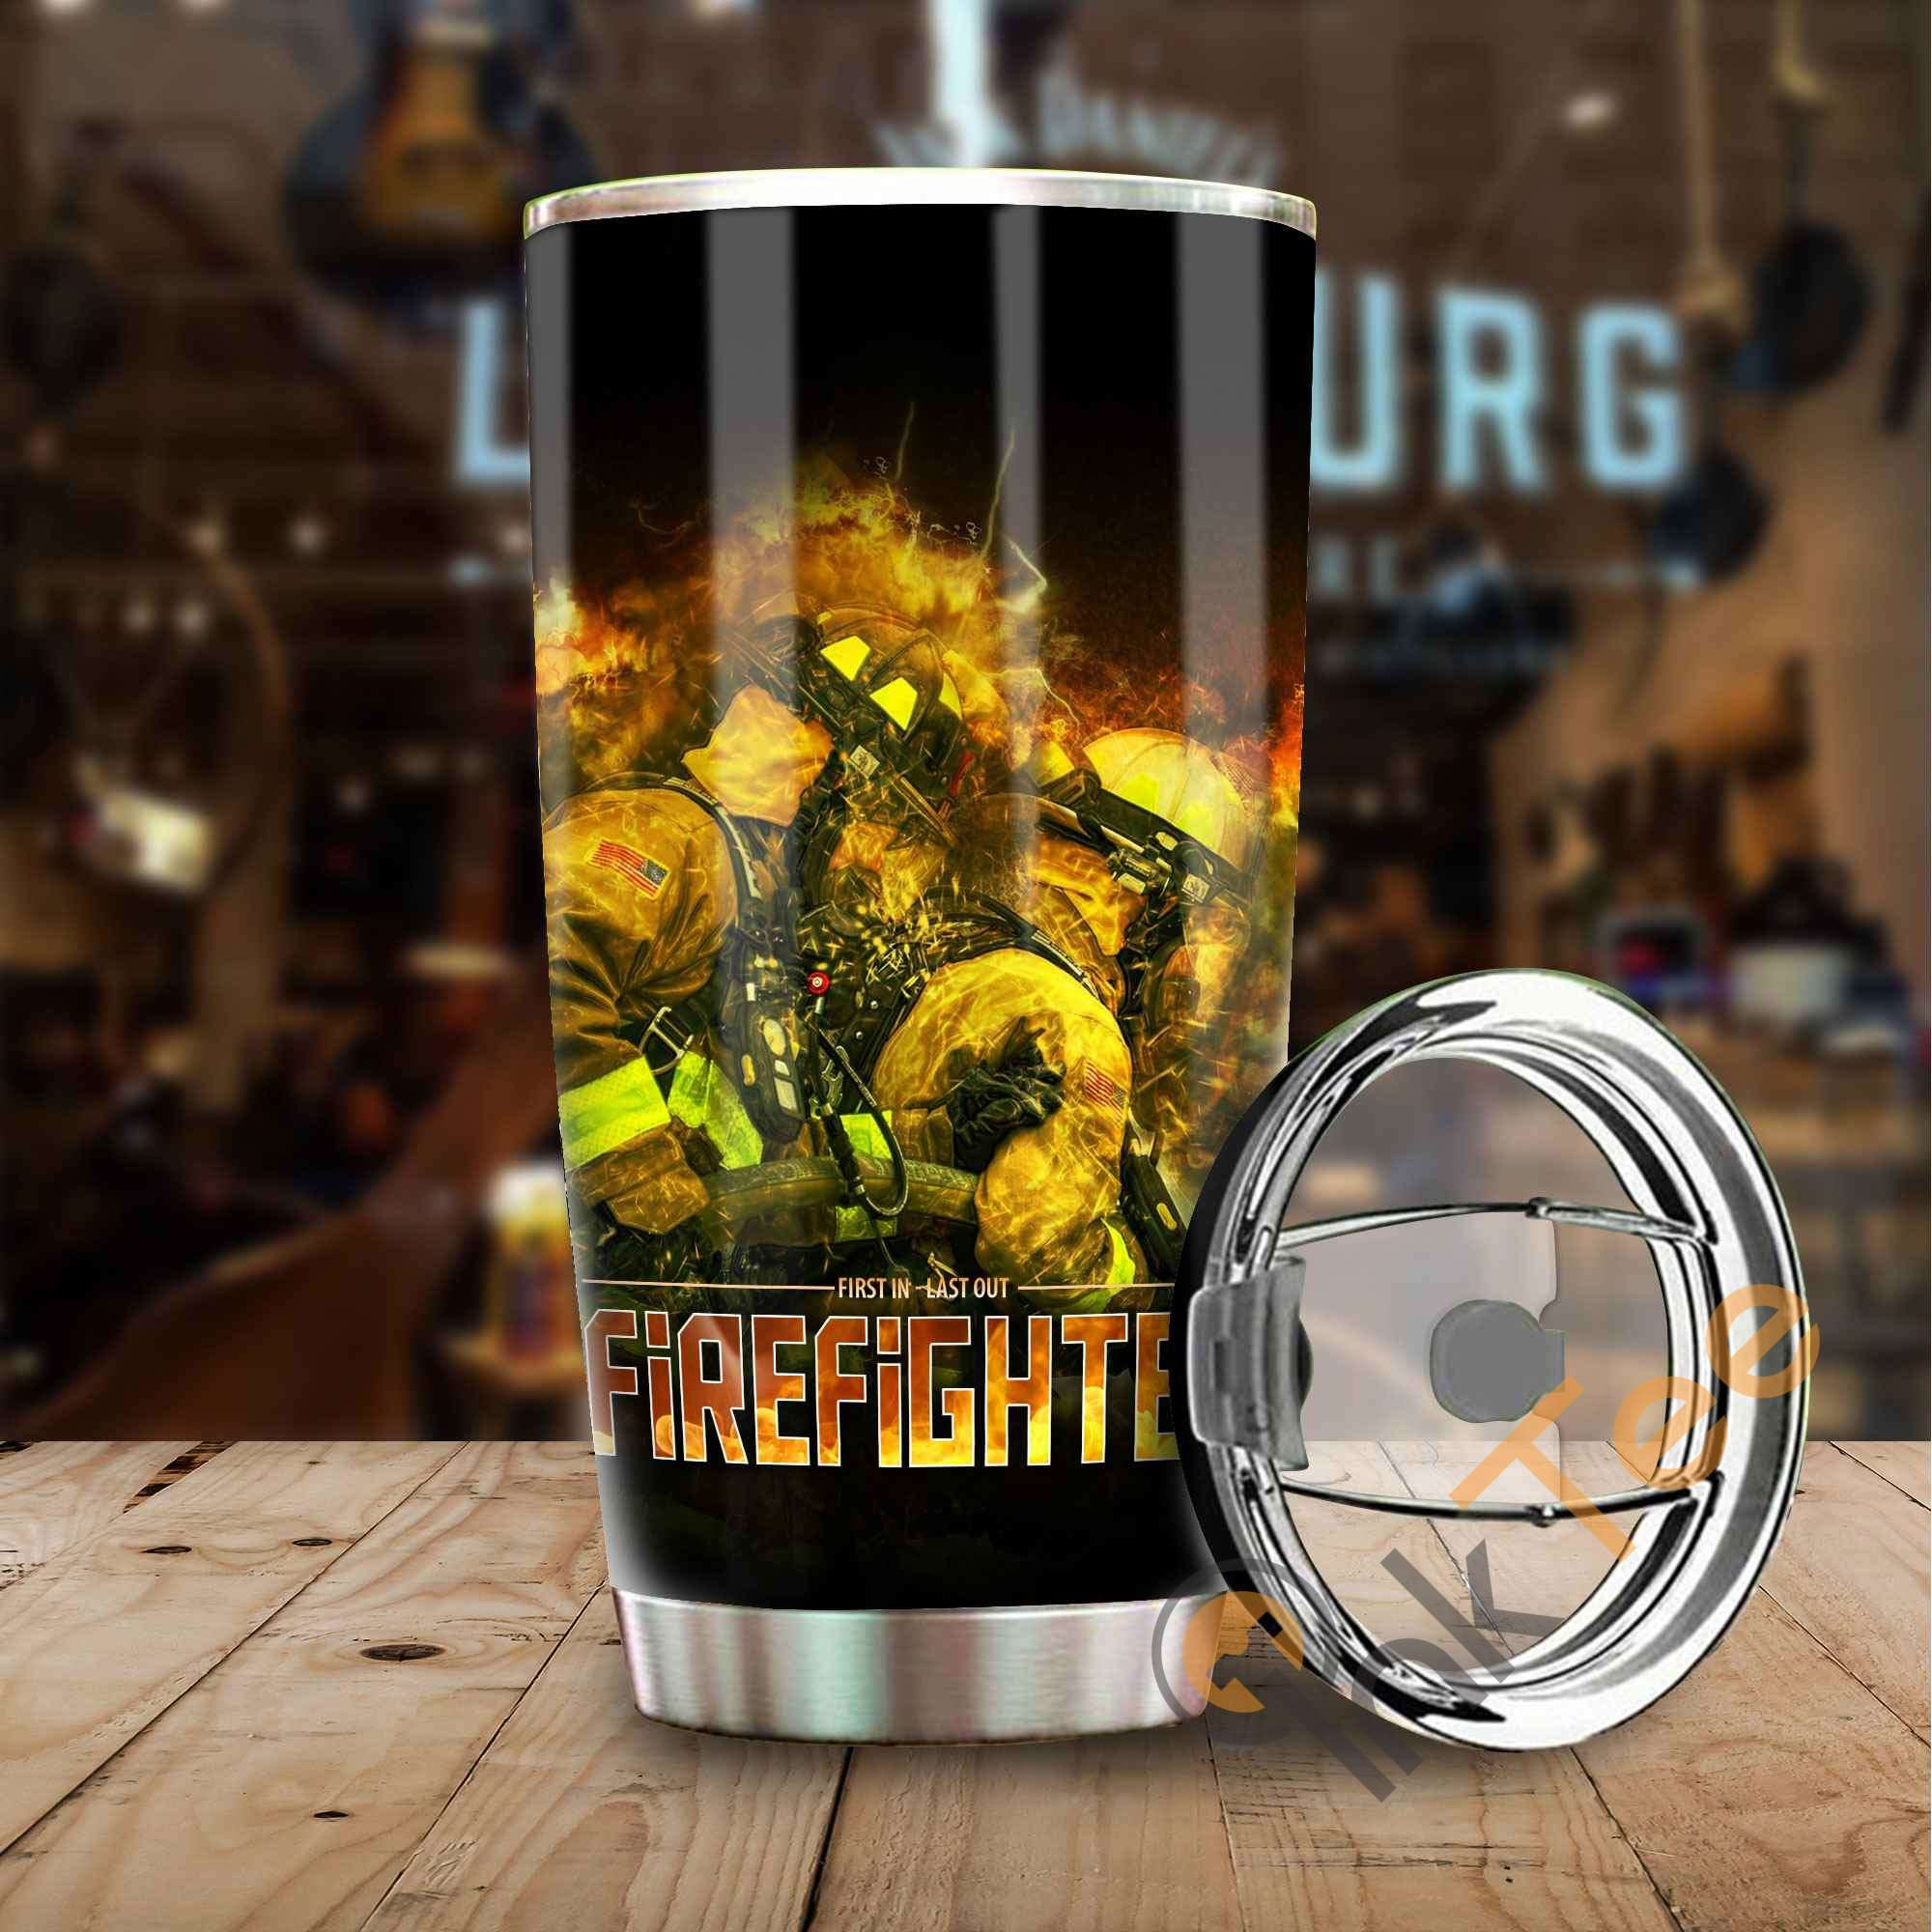 Firefighter ' First In Last Out Stainless Steel Tumbler